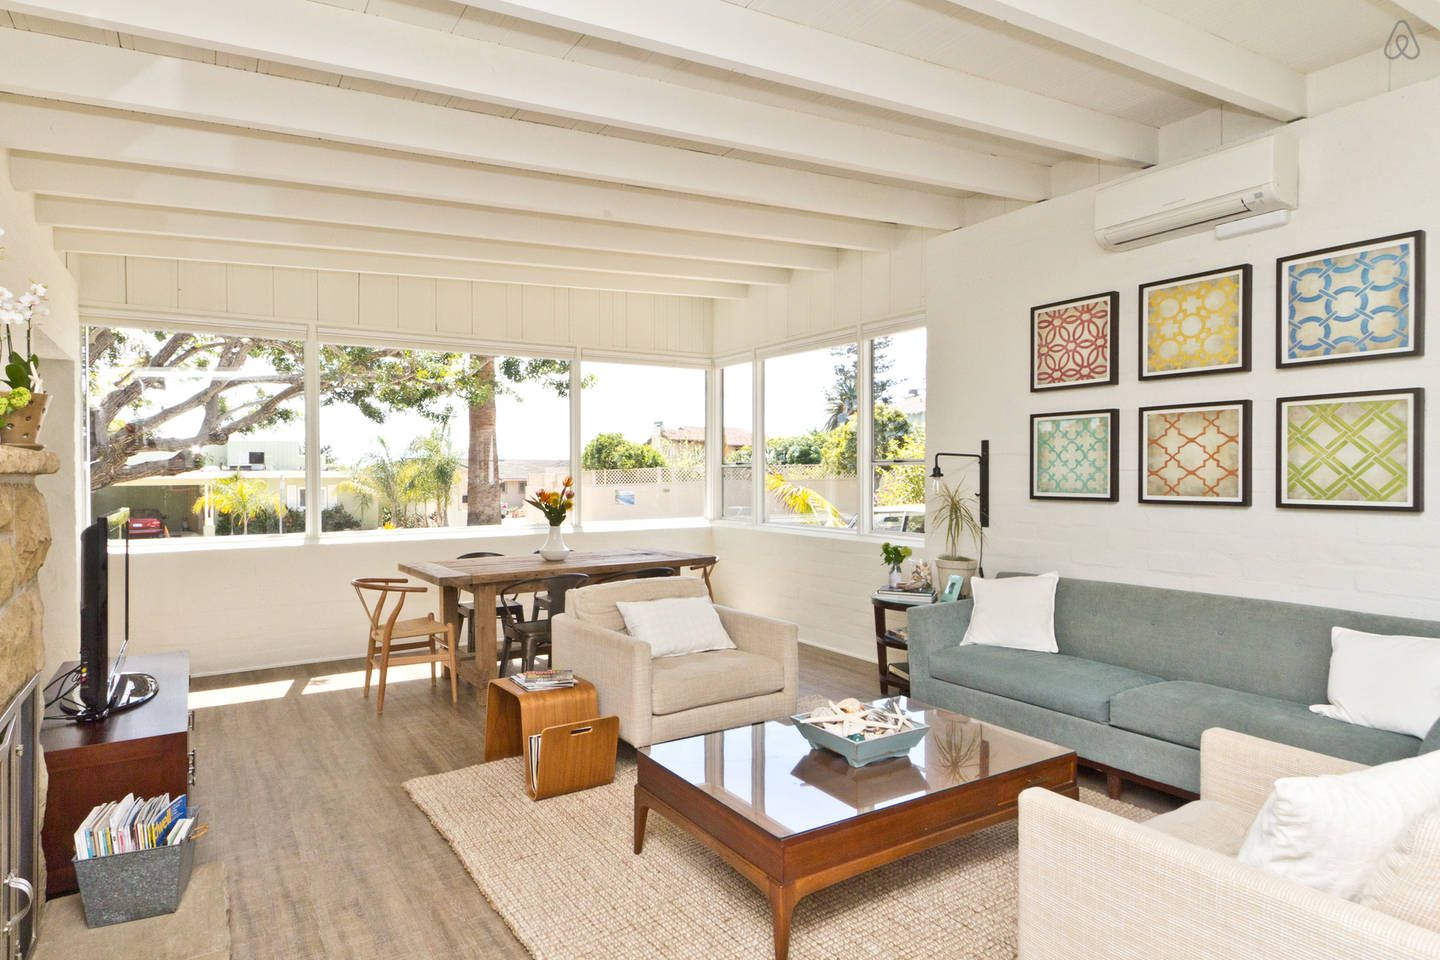 Bright Modern Family Beach House - vacation rental in ...